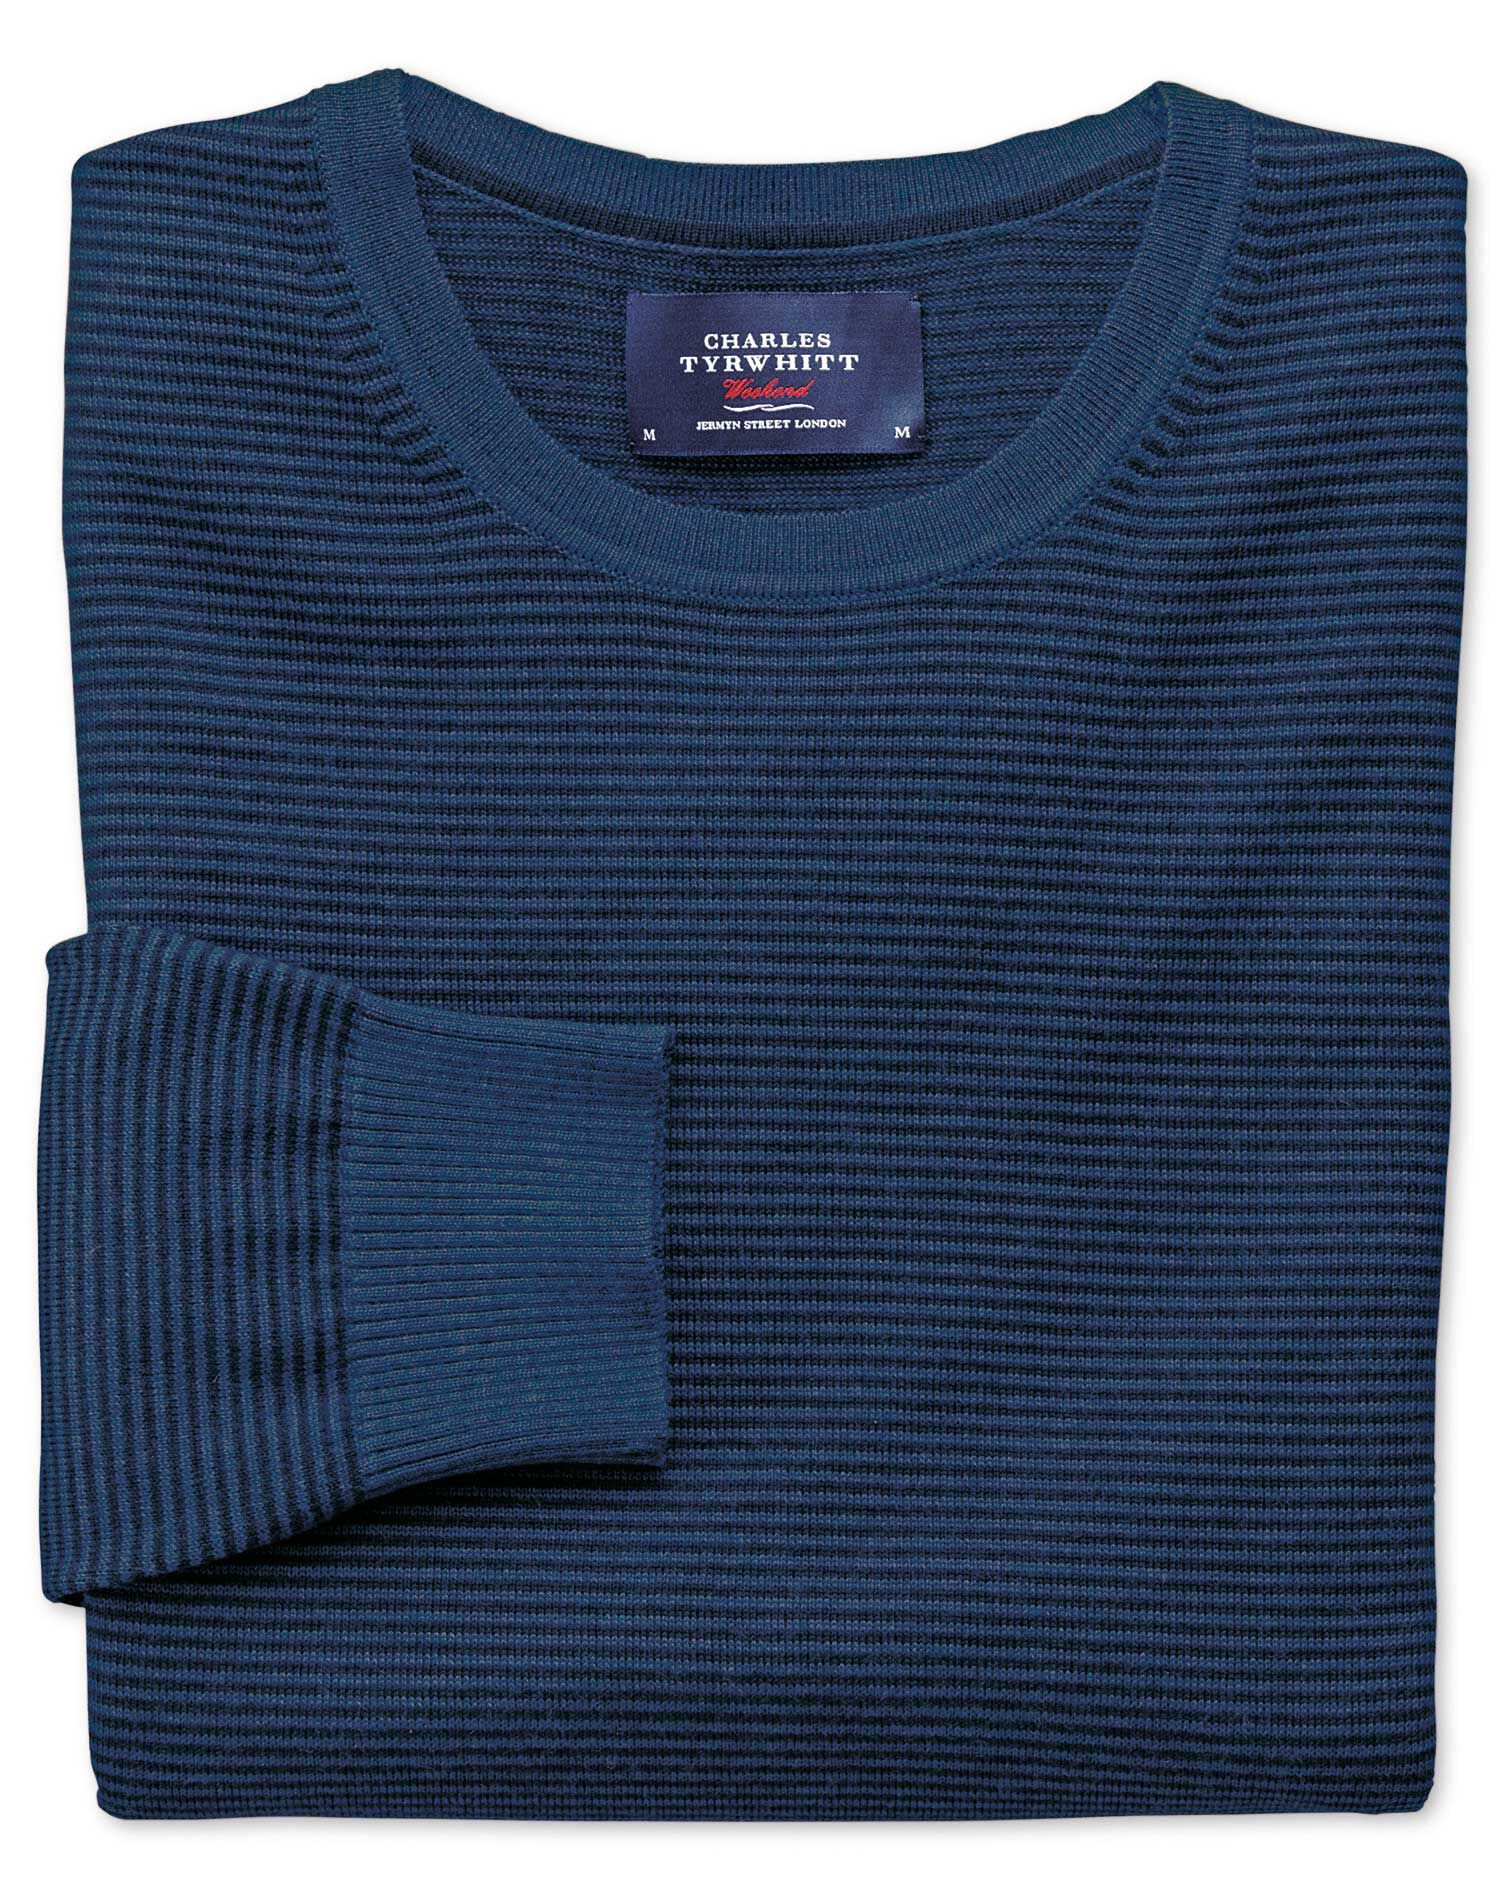 Navy and Blue Merino Wool Crew Neck Jumper Size XXXL by Charles Tyrwhitt